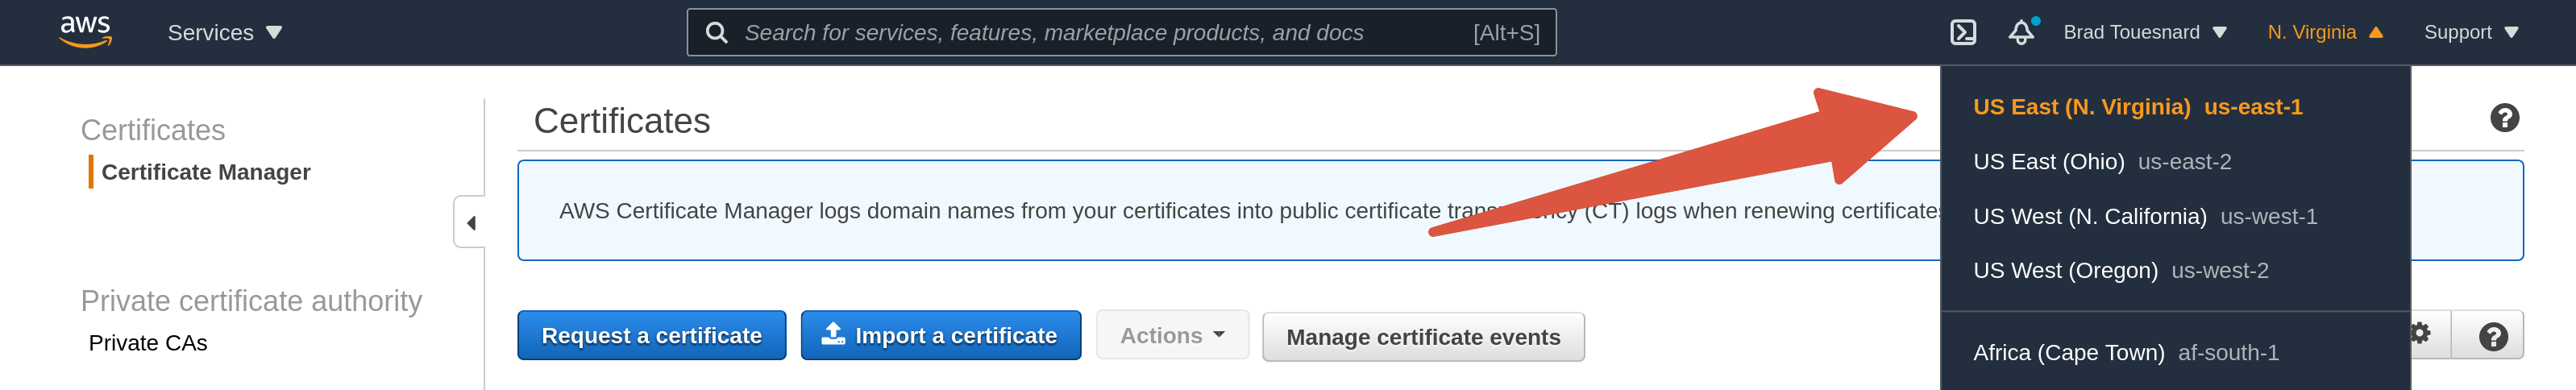 OME CloudFront Setup - Certificate Manager page showing region select menu and Request a certificate button